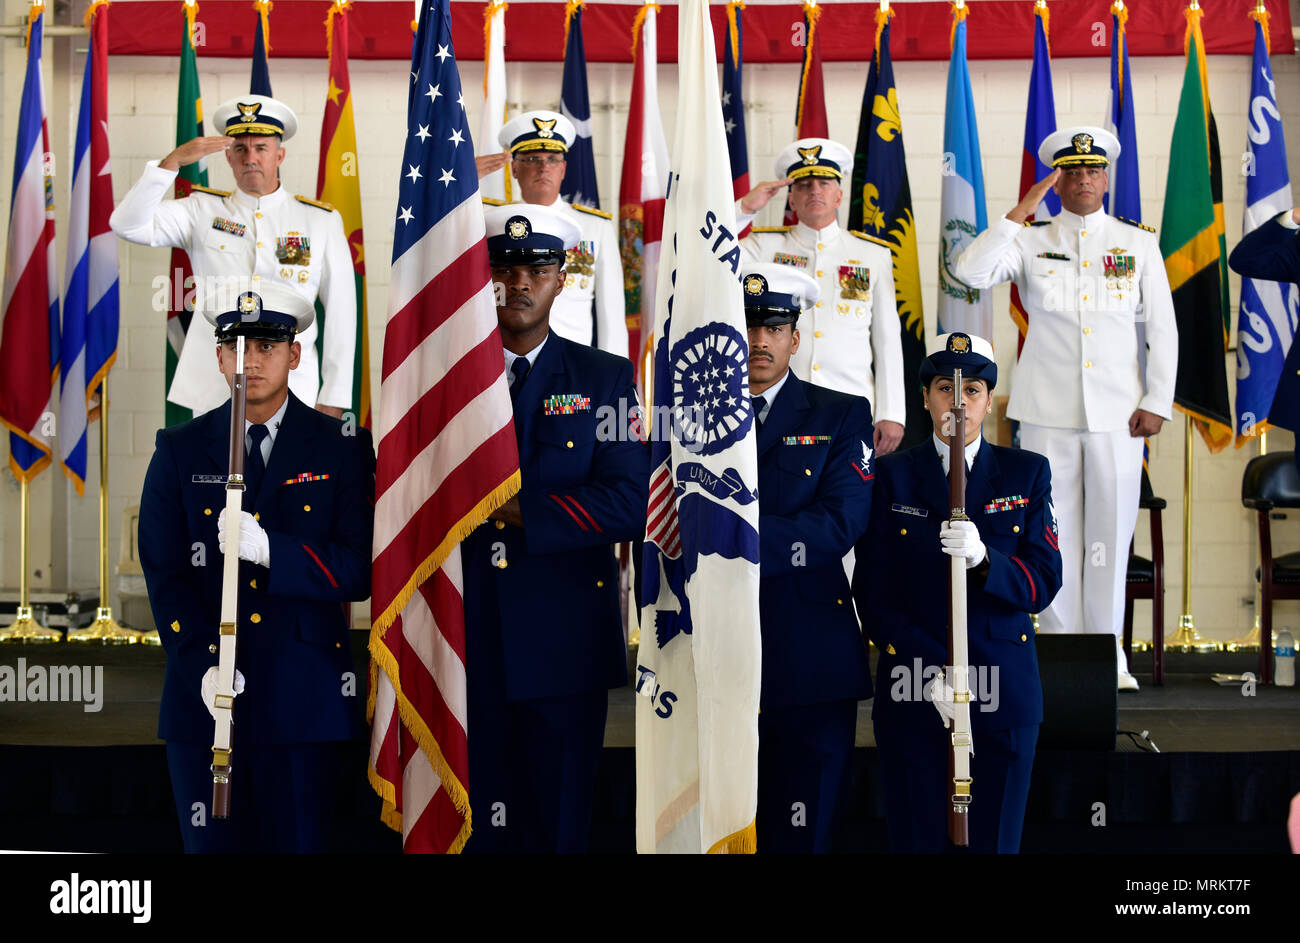 The color guard presents the colors at the Coast Guard Seventh District Change of Command Ceremony at Air Station Miami on June 23, 2017. Coast Guard Rear Adm. Peter J. Brown relieved Rear Adm. Scott A. Buschman as commander of the Seventh District. Stock Photo